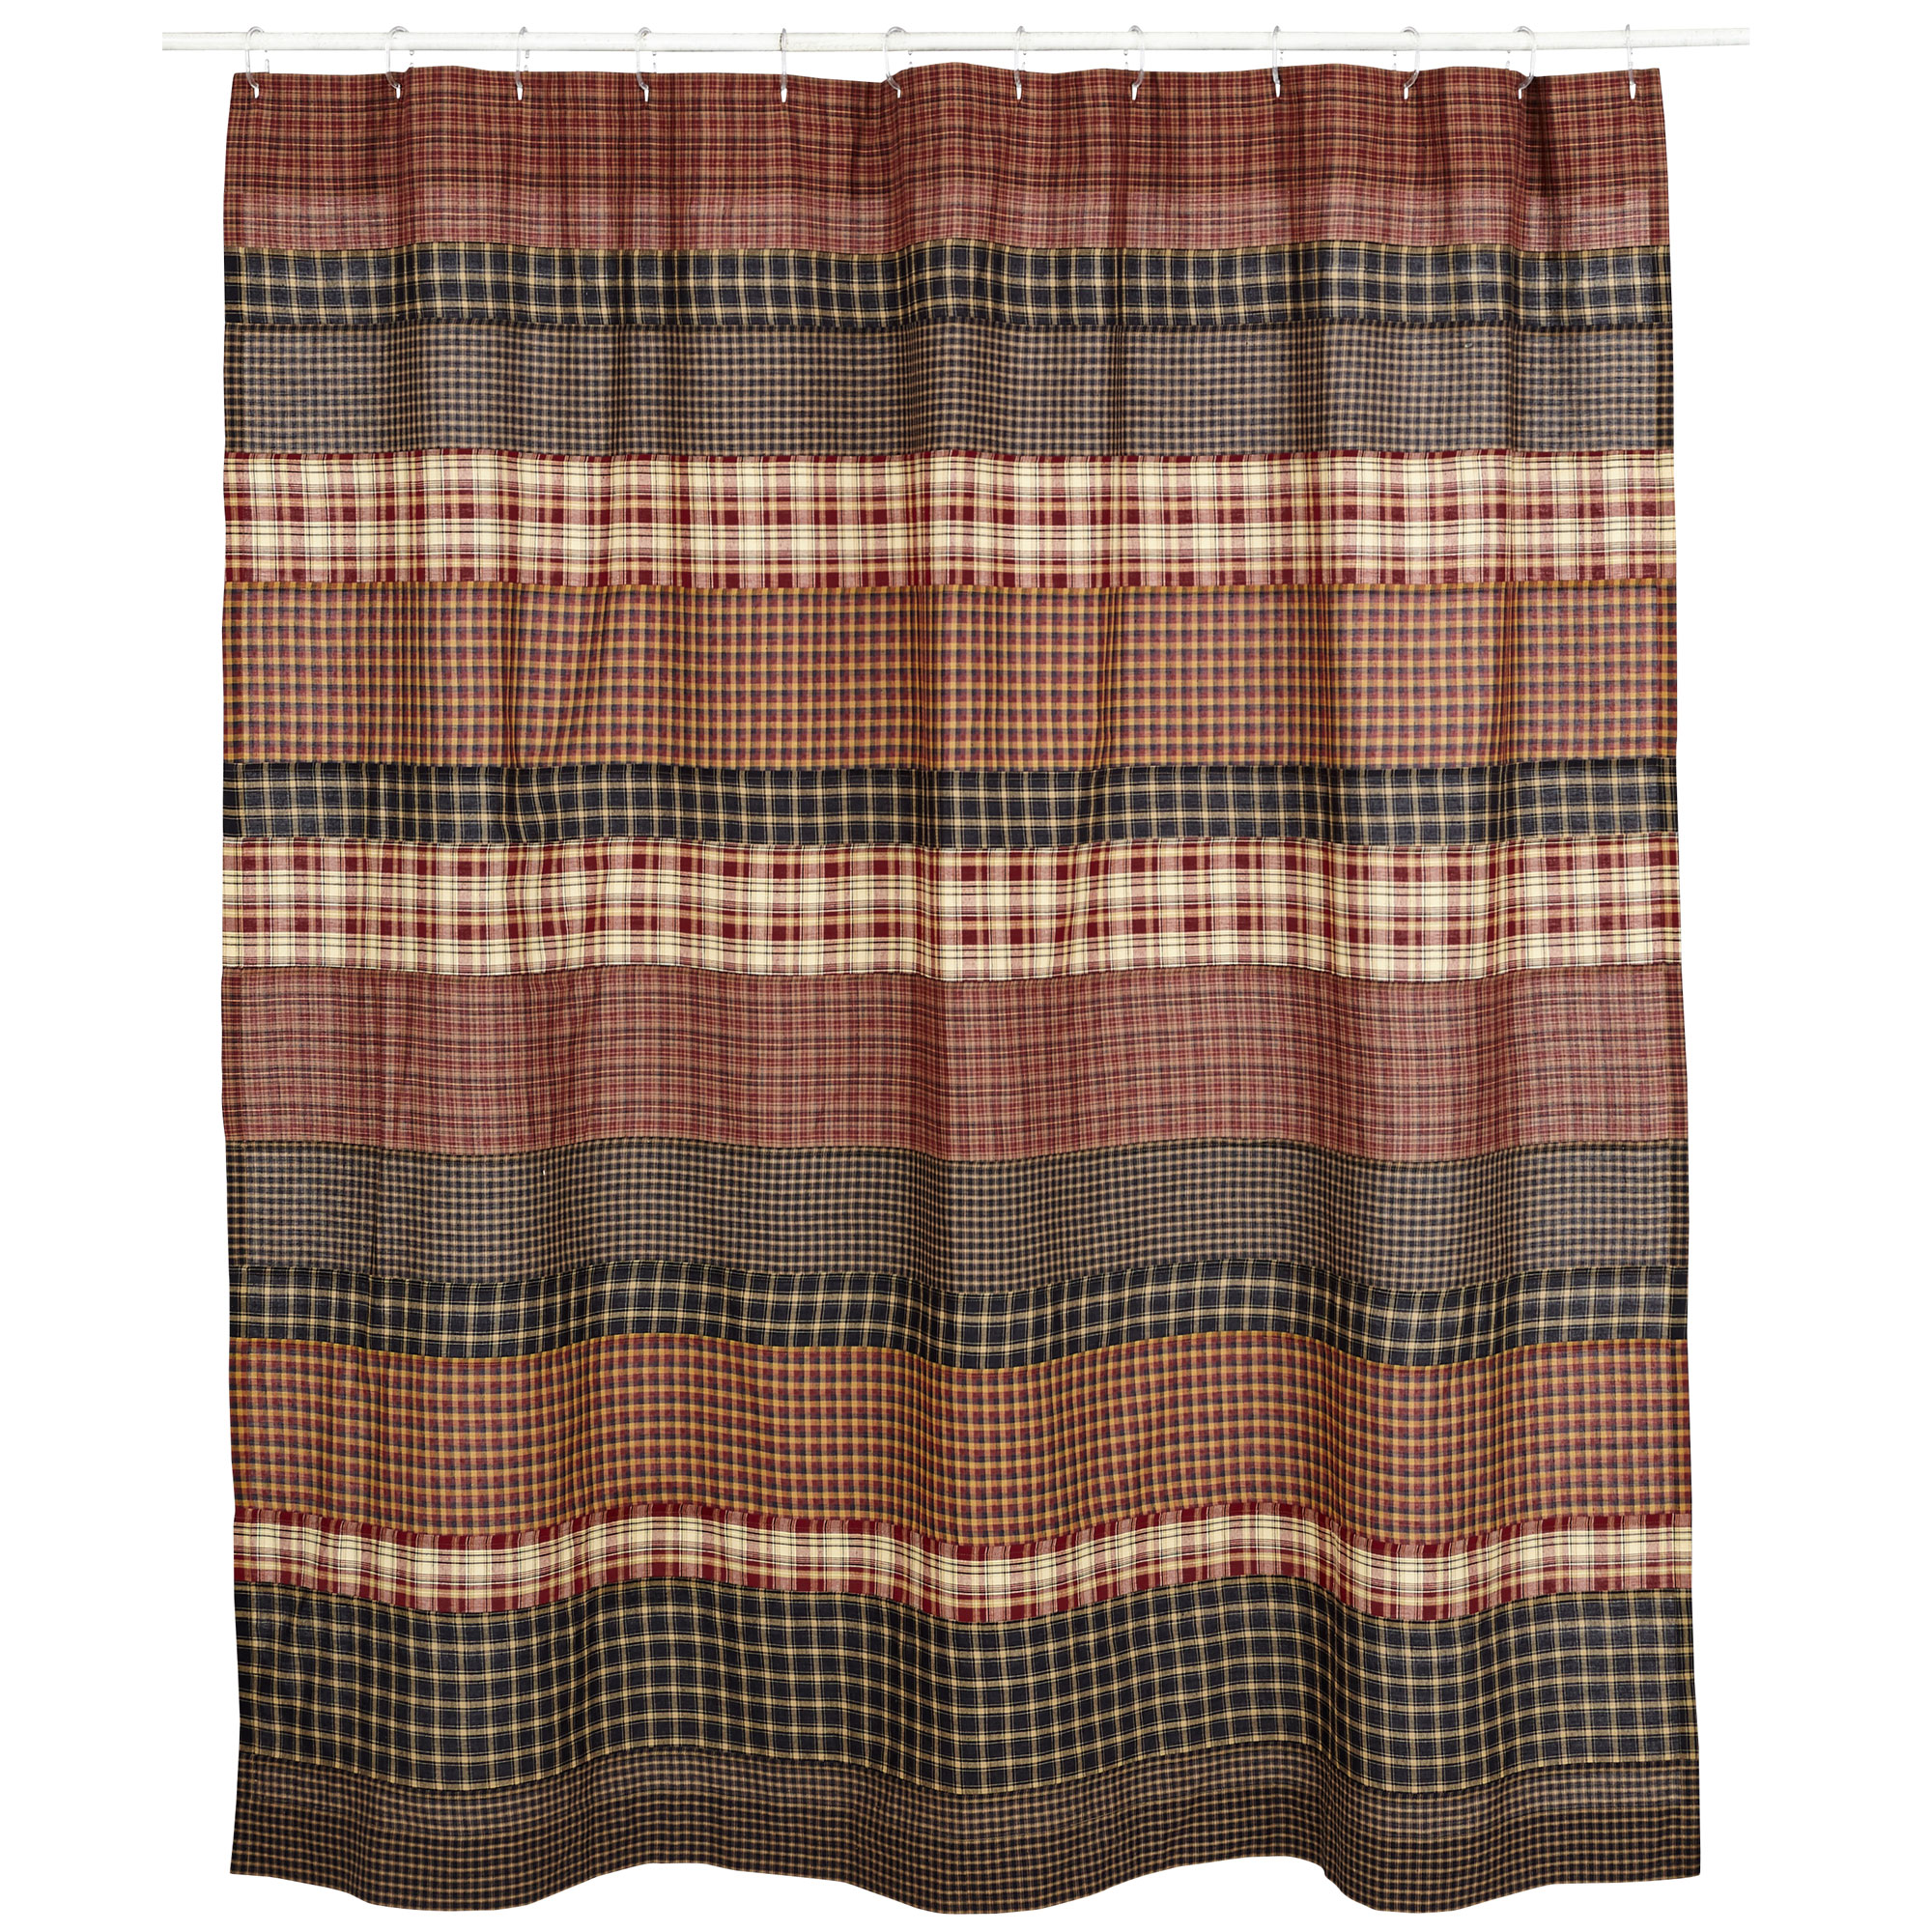 Olive Country Primitive Stratton Shower Curtain Tan Black 72x72 Cotton Red